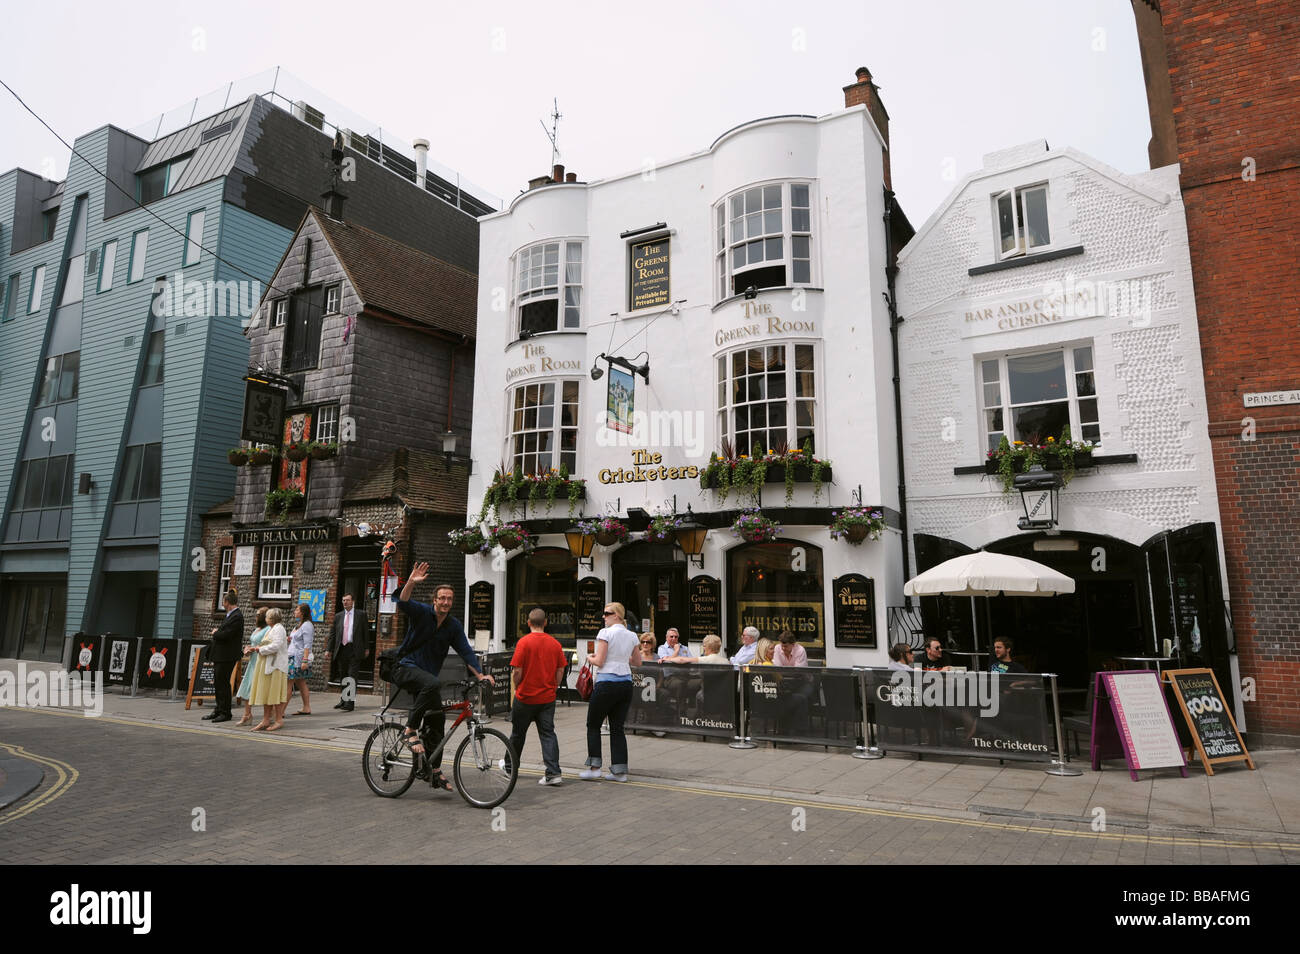 The Cricketers and Black Lion pubs in the Lanes area of Brighton - Stock Image